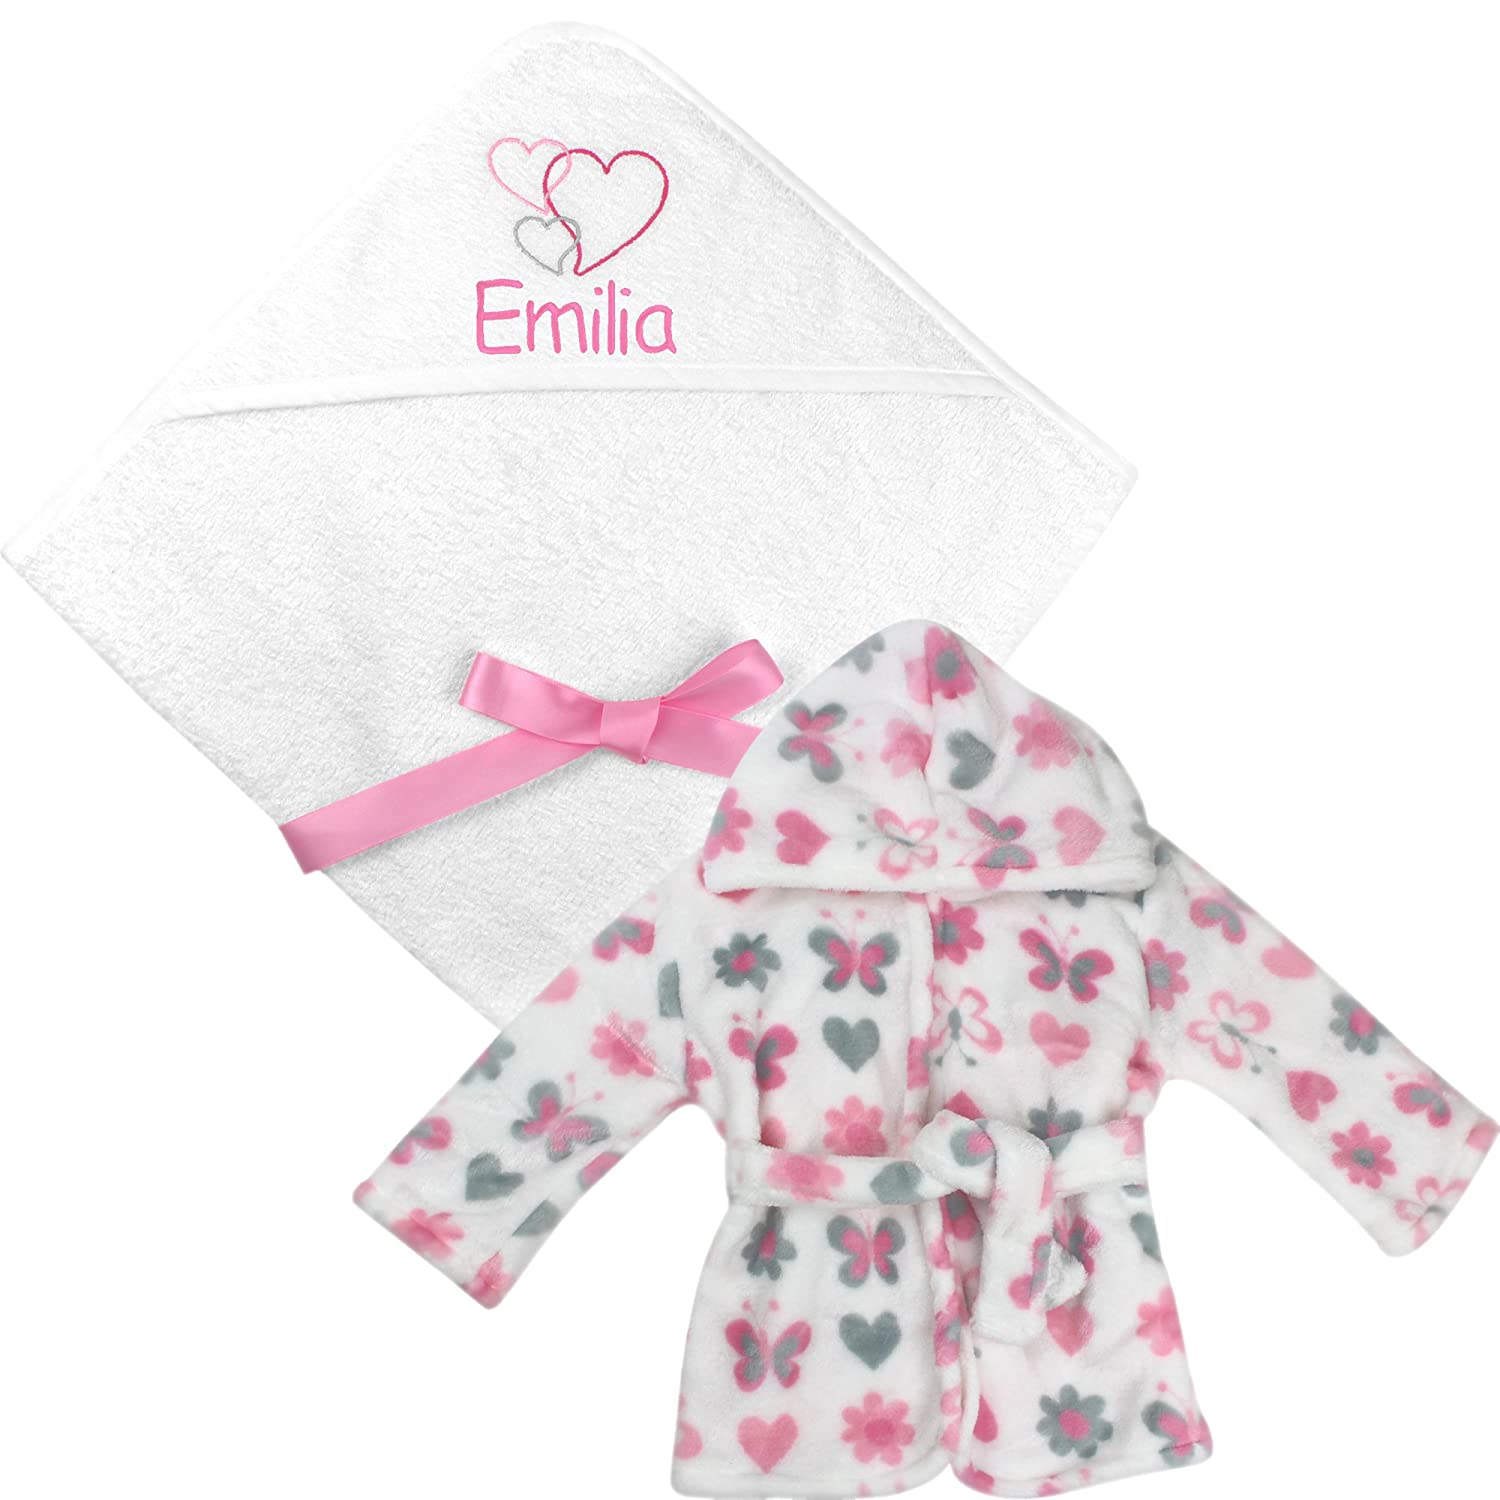 Personalised Gift Set Baby Girl's Hooded Bath Towel and Bathrobe Dressing Gown TeddyT' s